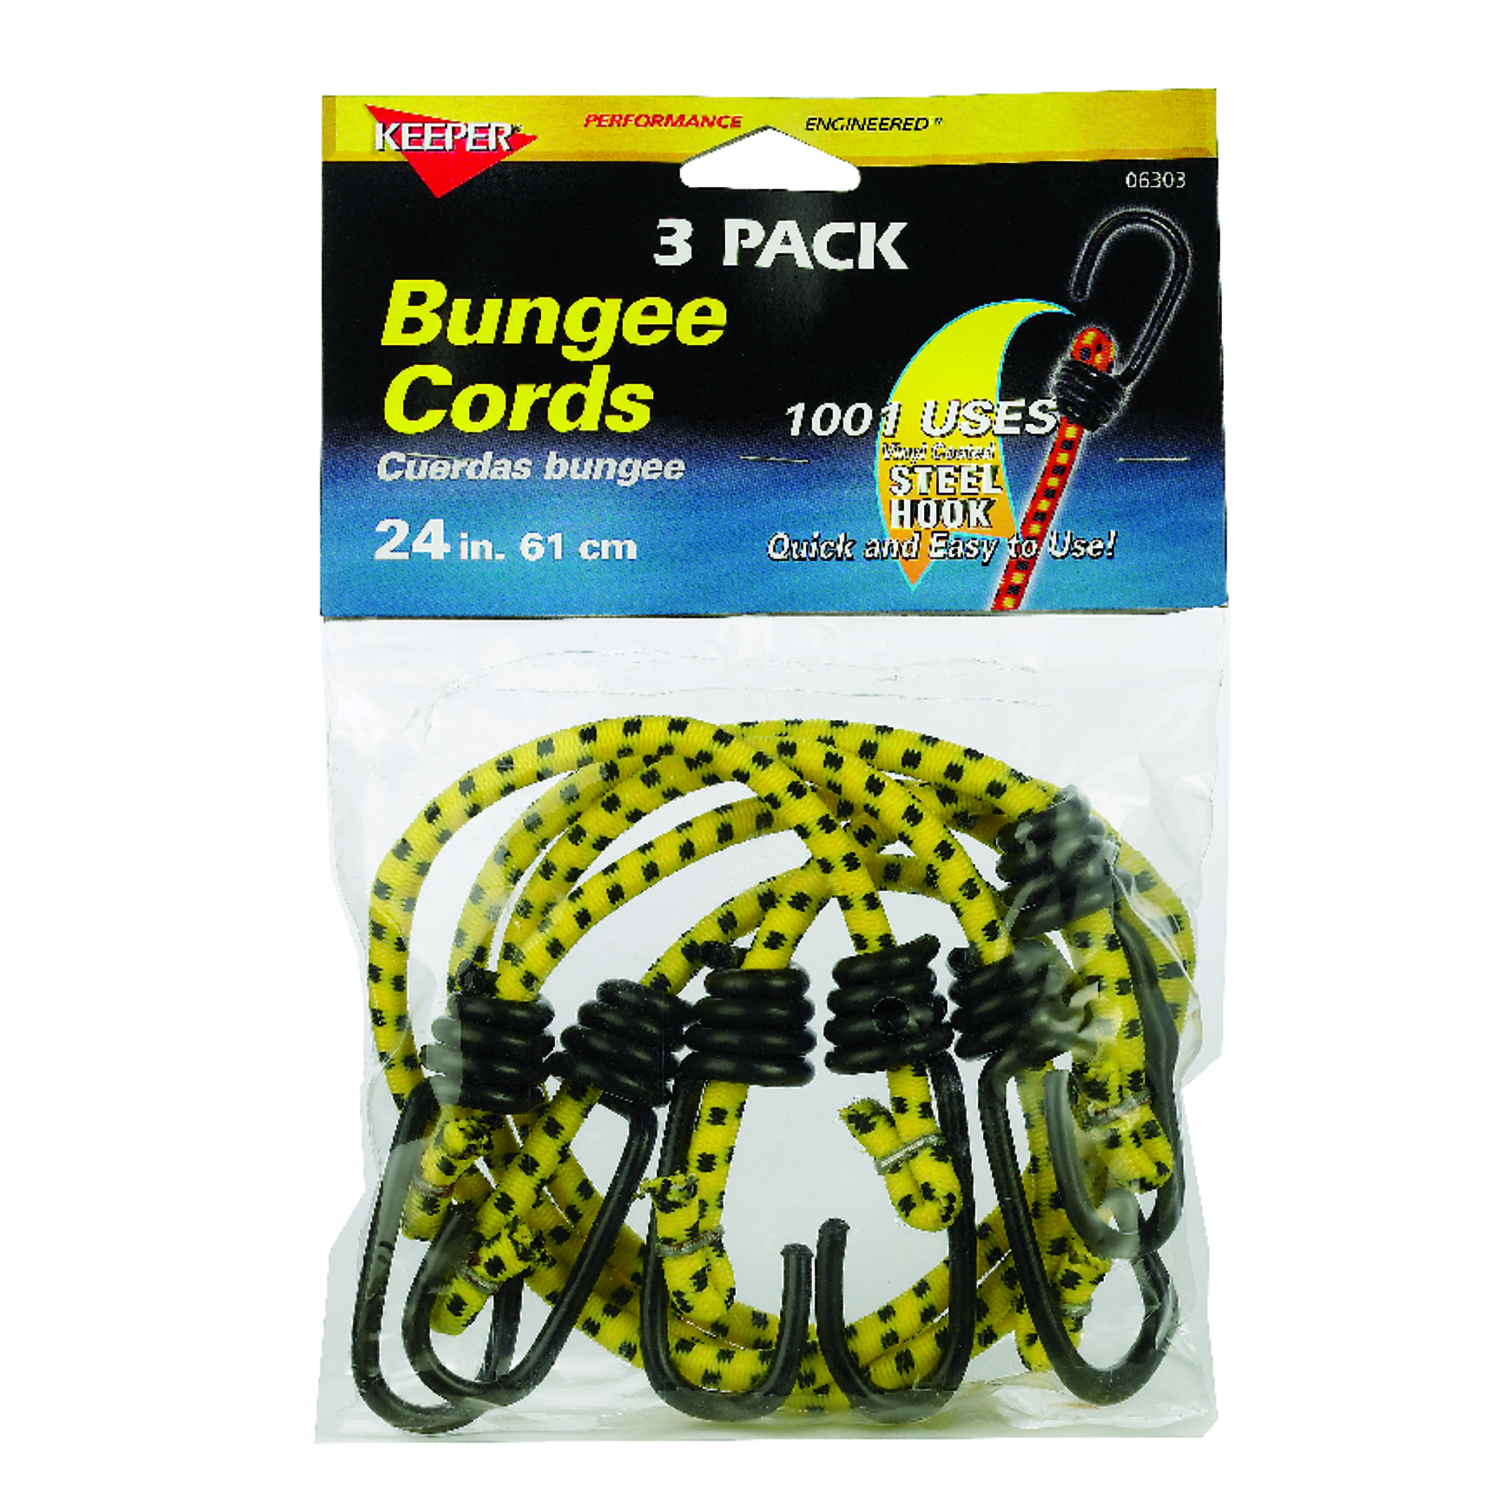 Hand Cart 48 inches, Black Heavy Stretchy Luggage Rope for Securing Home Stuff on Rack 3//8-inch Bungee Cords with Hooks Bikes